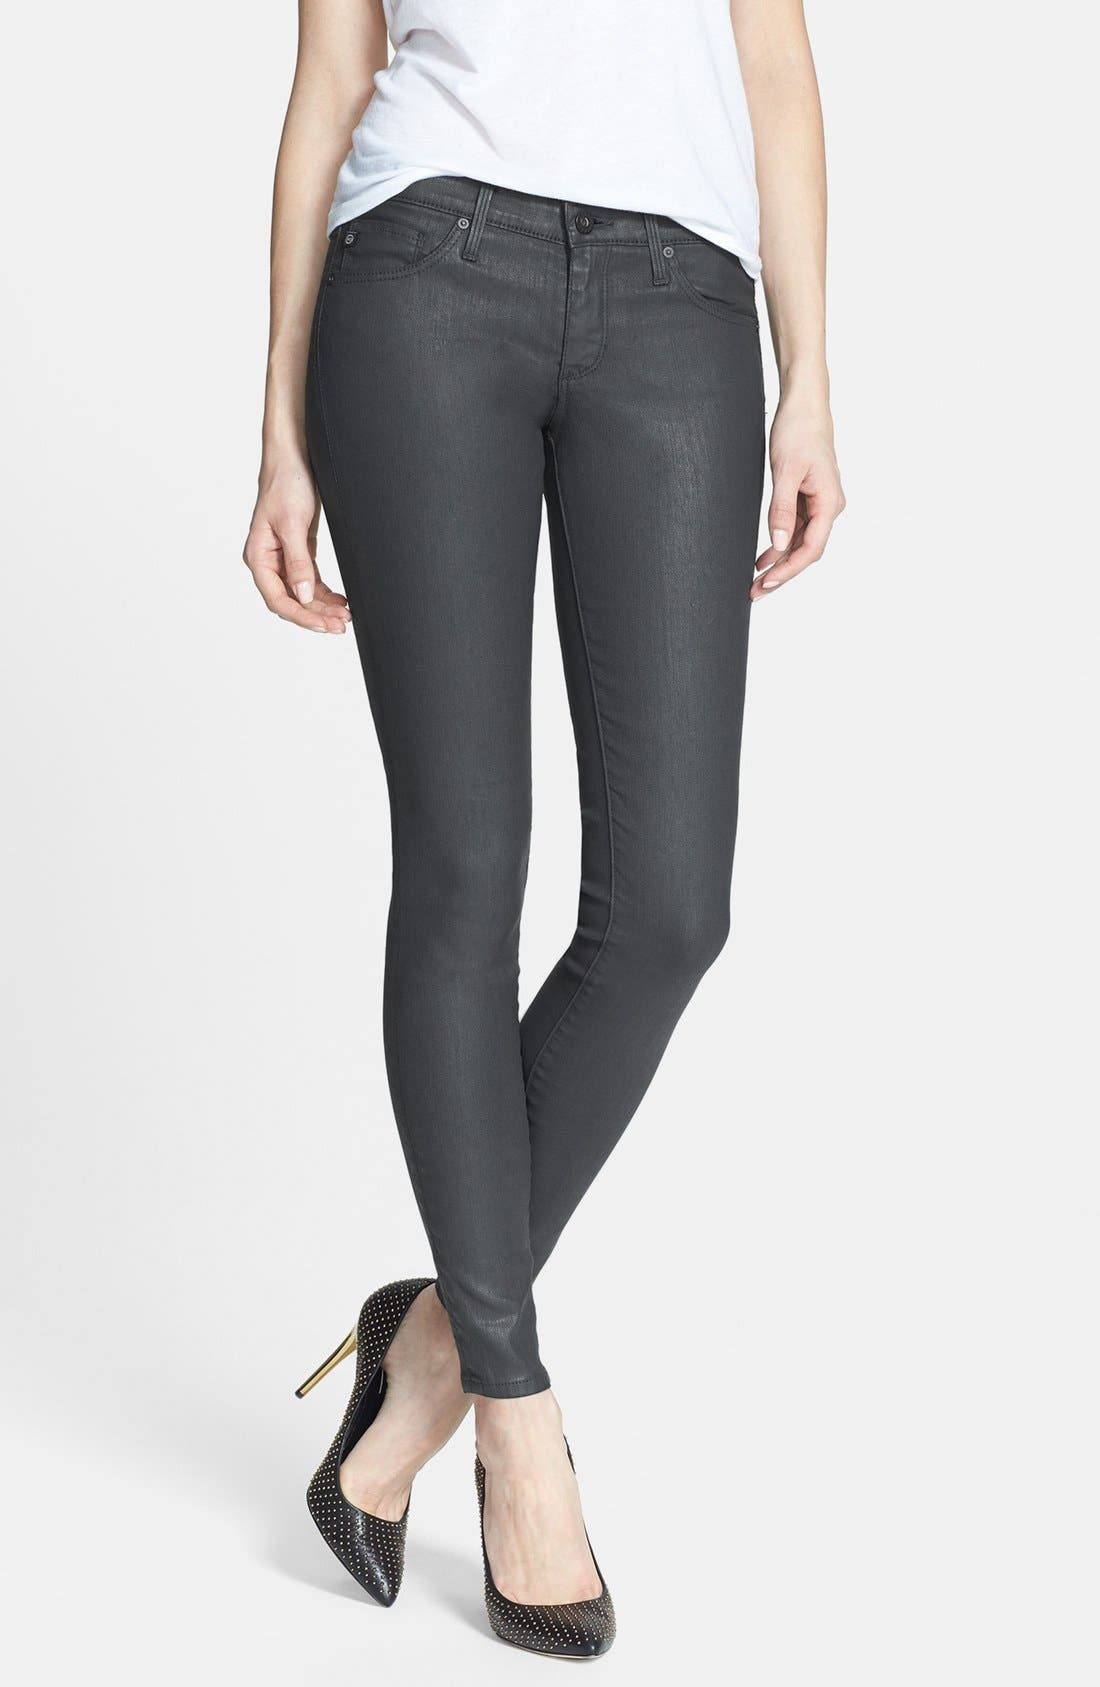 Alternate Image 1 Selected - AG 'The Absolute Legging' Coated Skinny Jeans (Dark Grey)